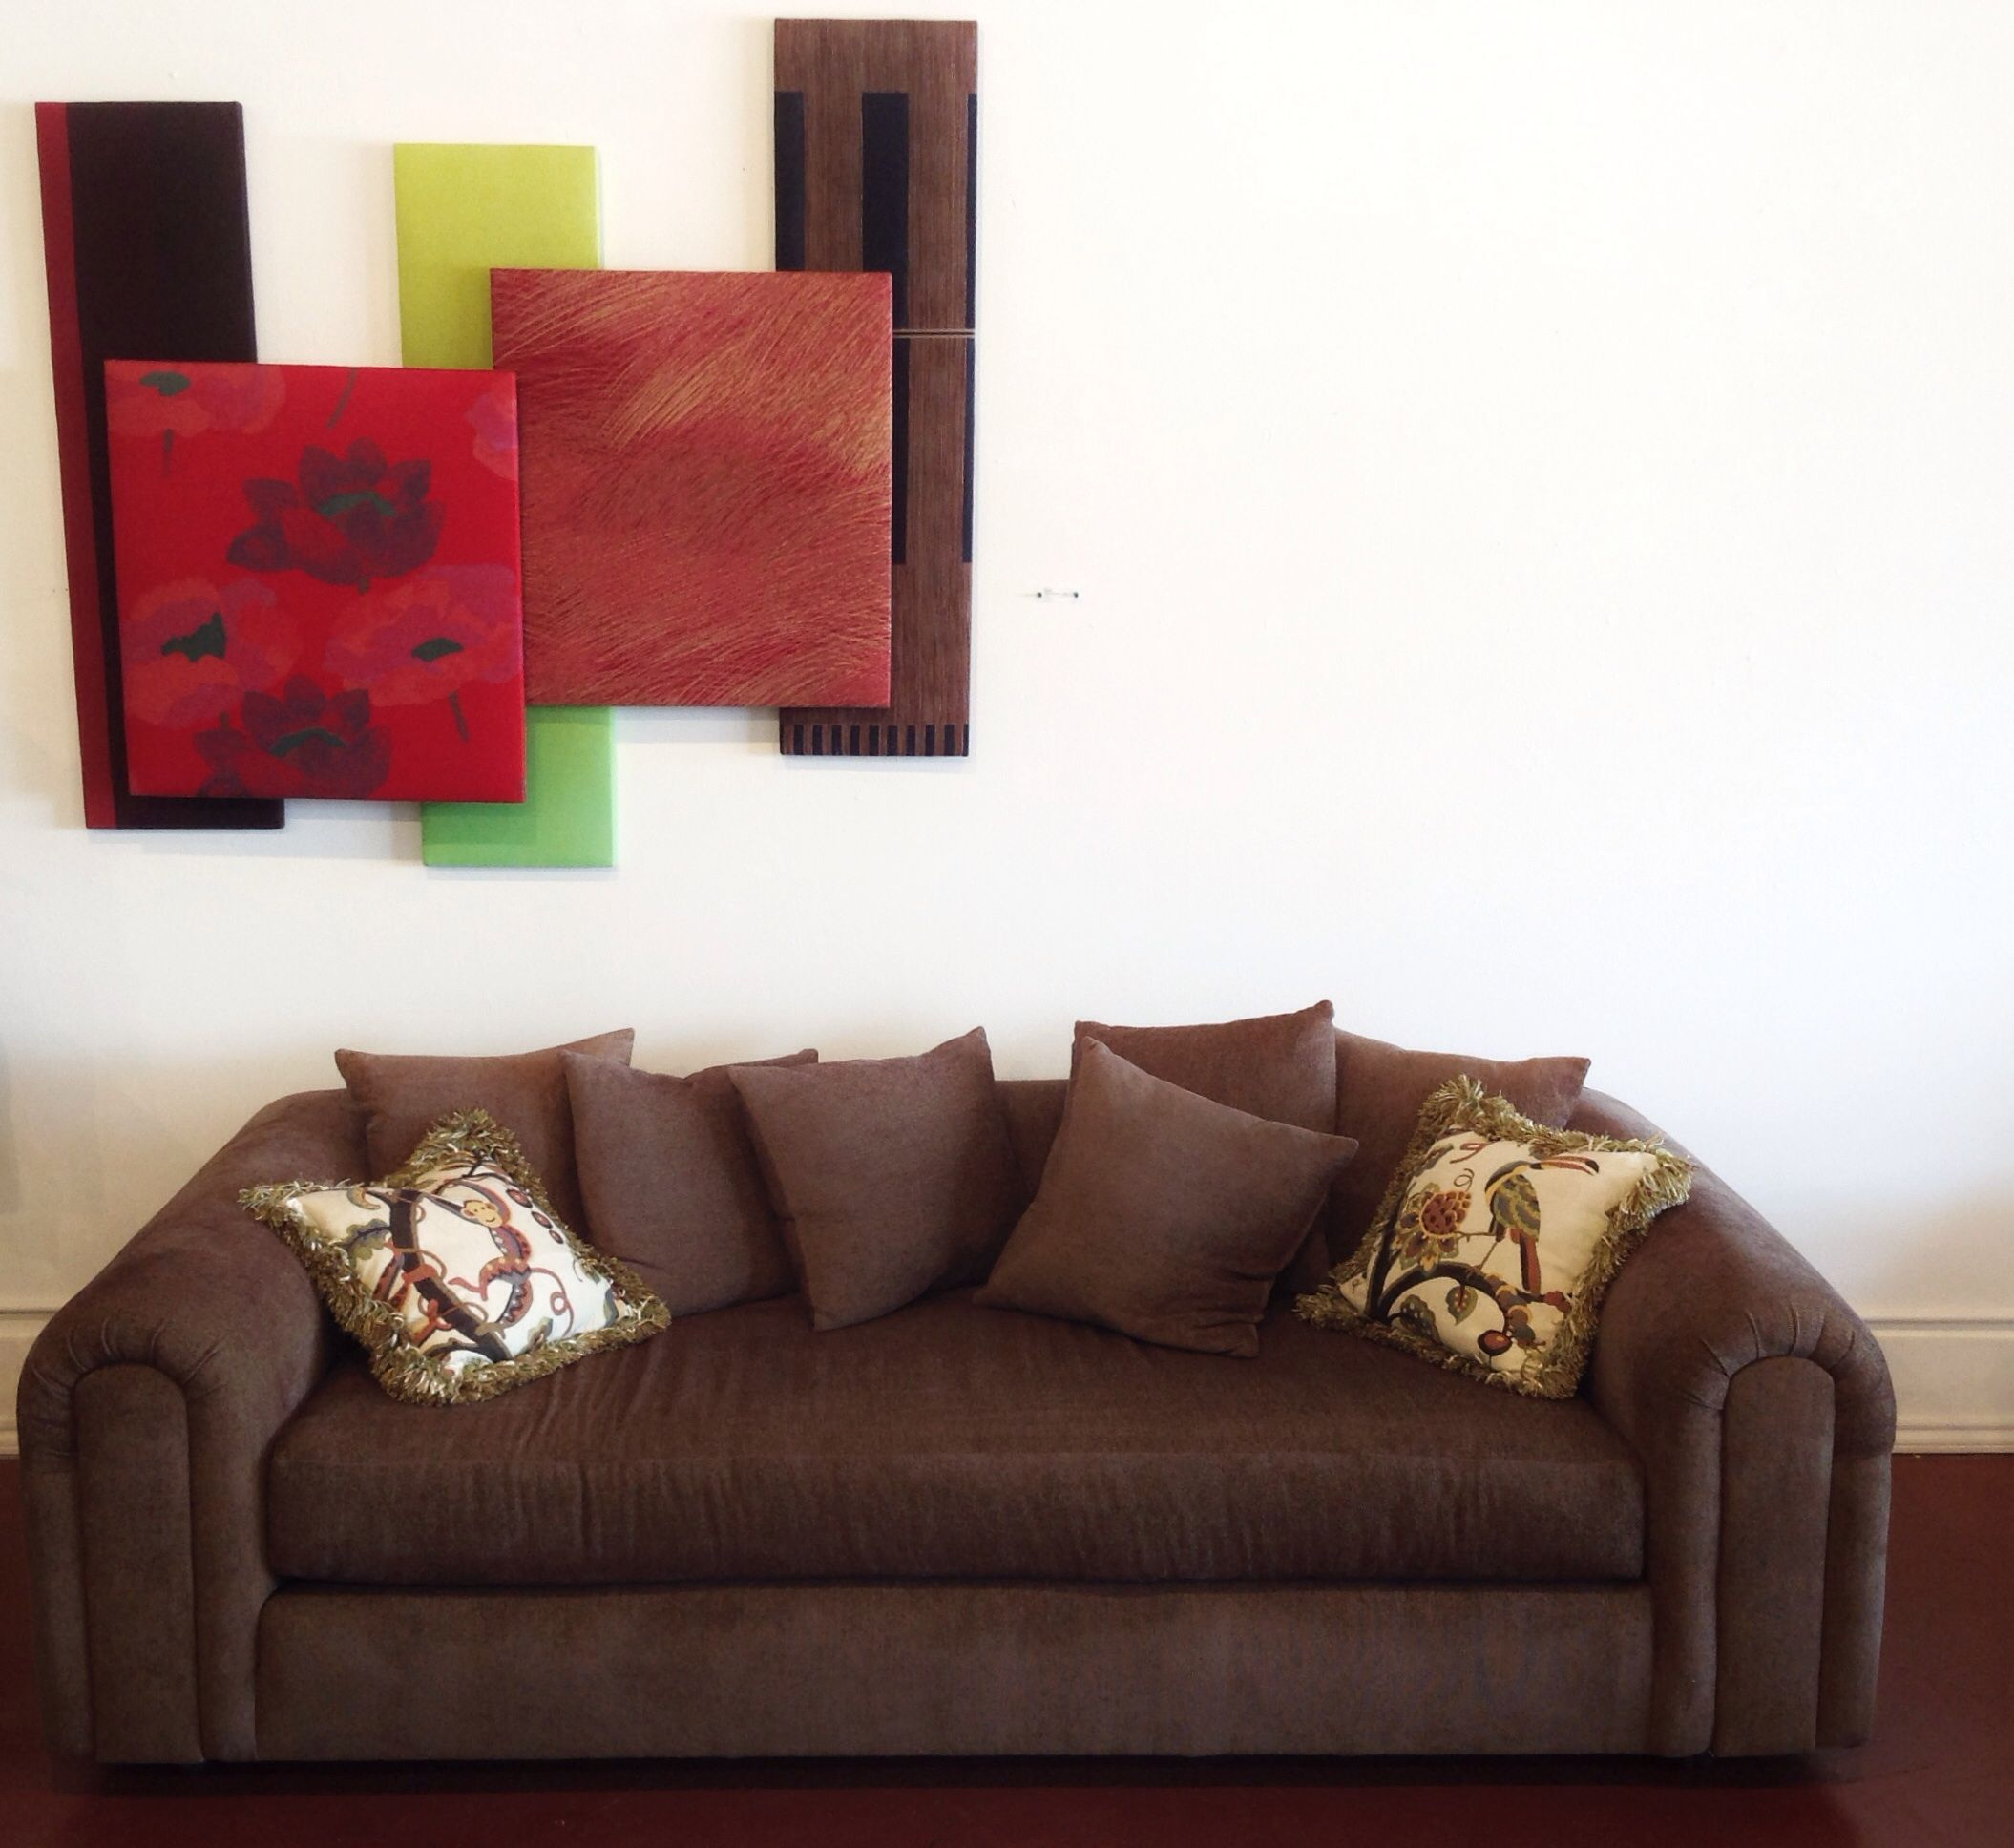 The Brown Couch! To purchase this item or learn more about